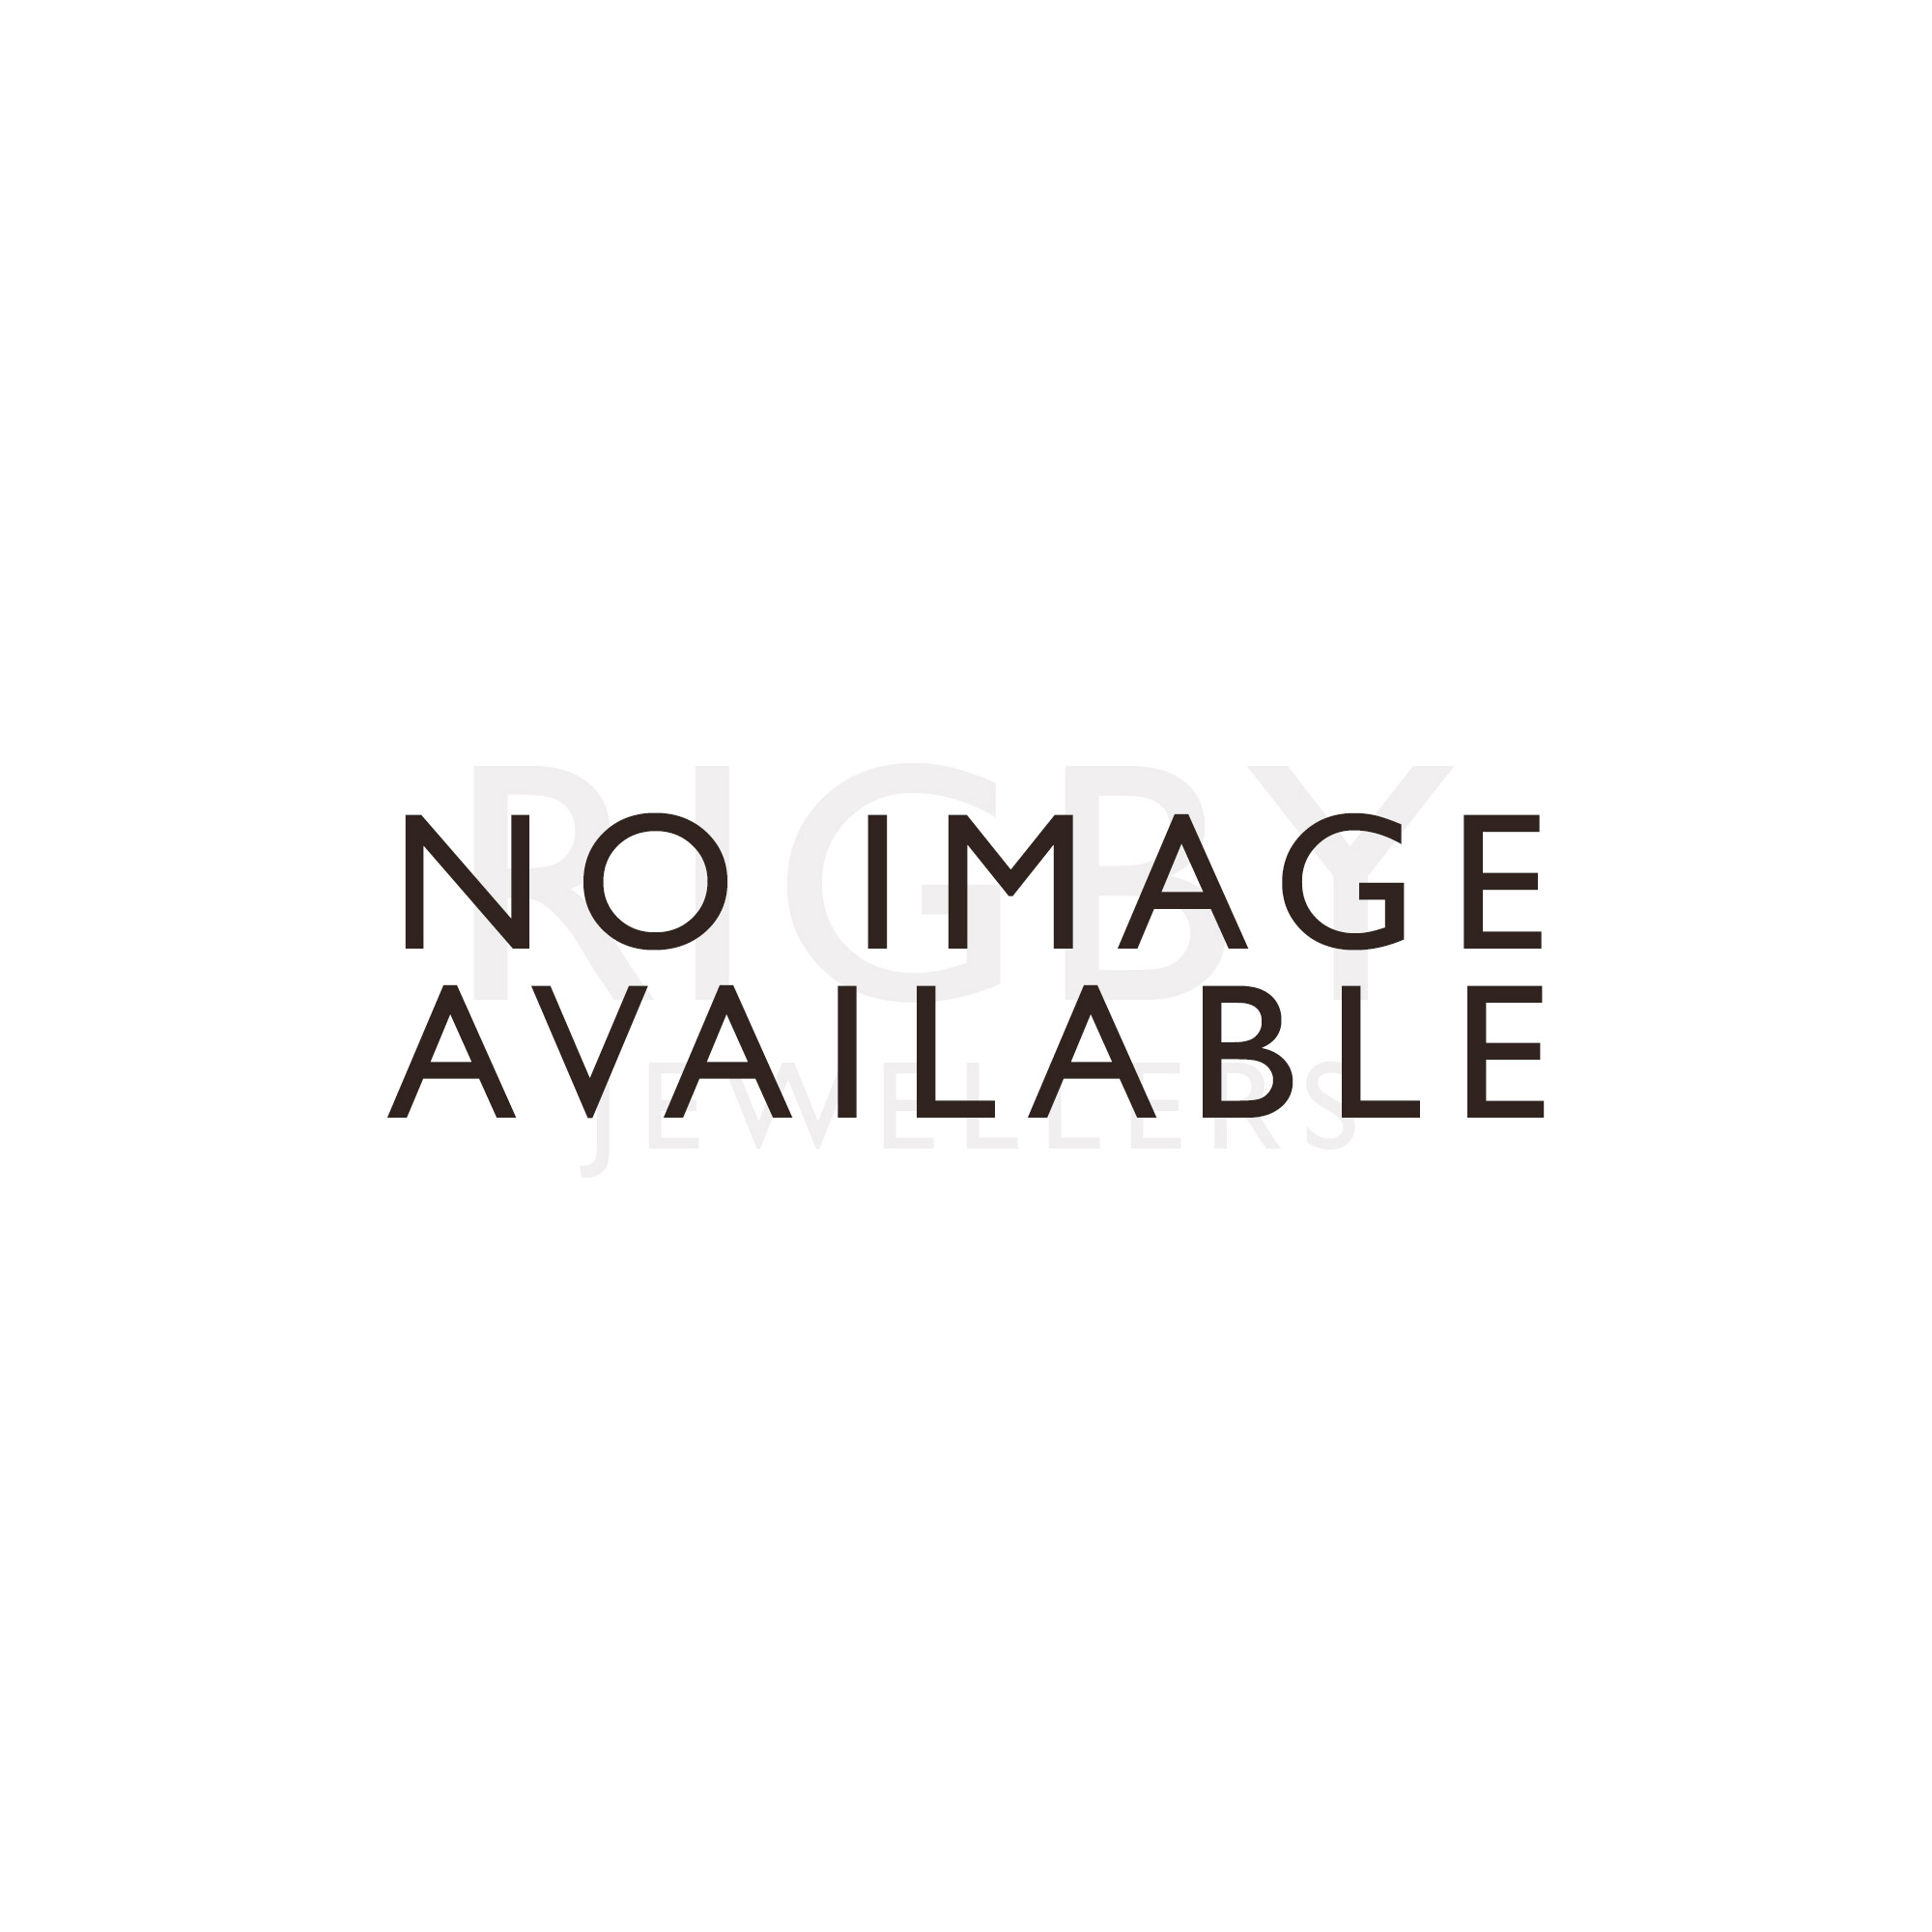 Dark Wood Westminster Chime Battery Wall Clock QXH202B